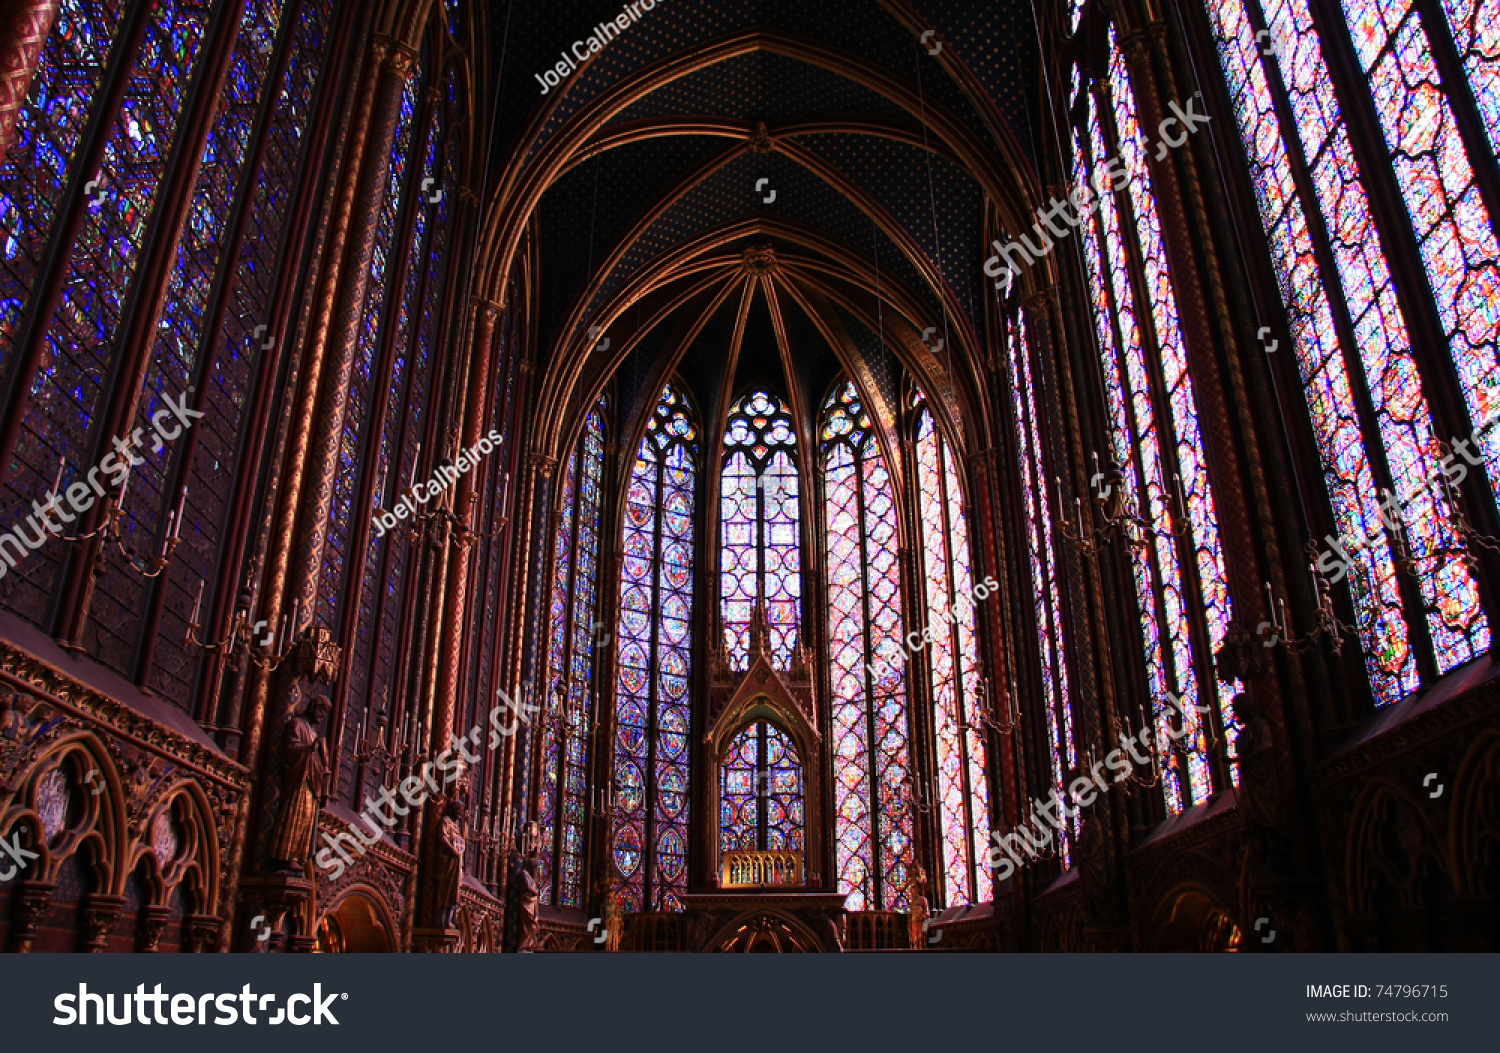 Famous Stained Glass Windows And Ceiling Within La Sainte Chapelle Chapel In Paris France